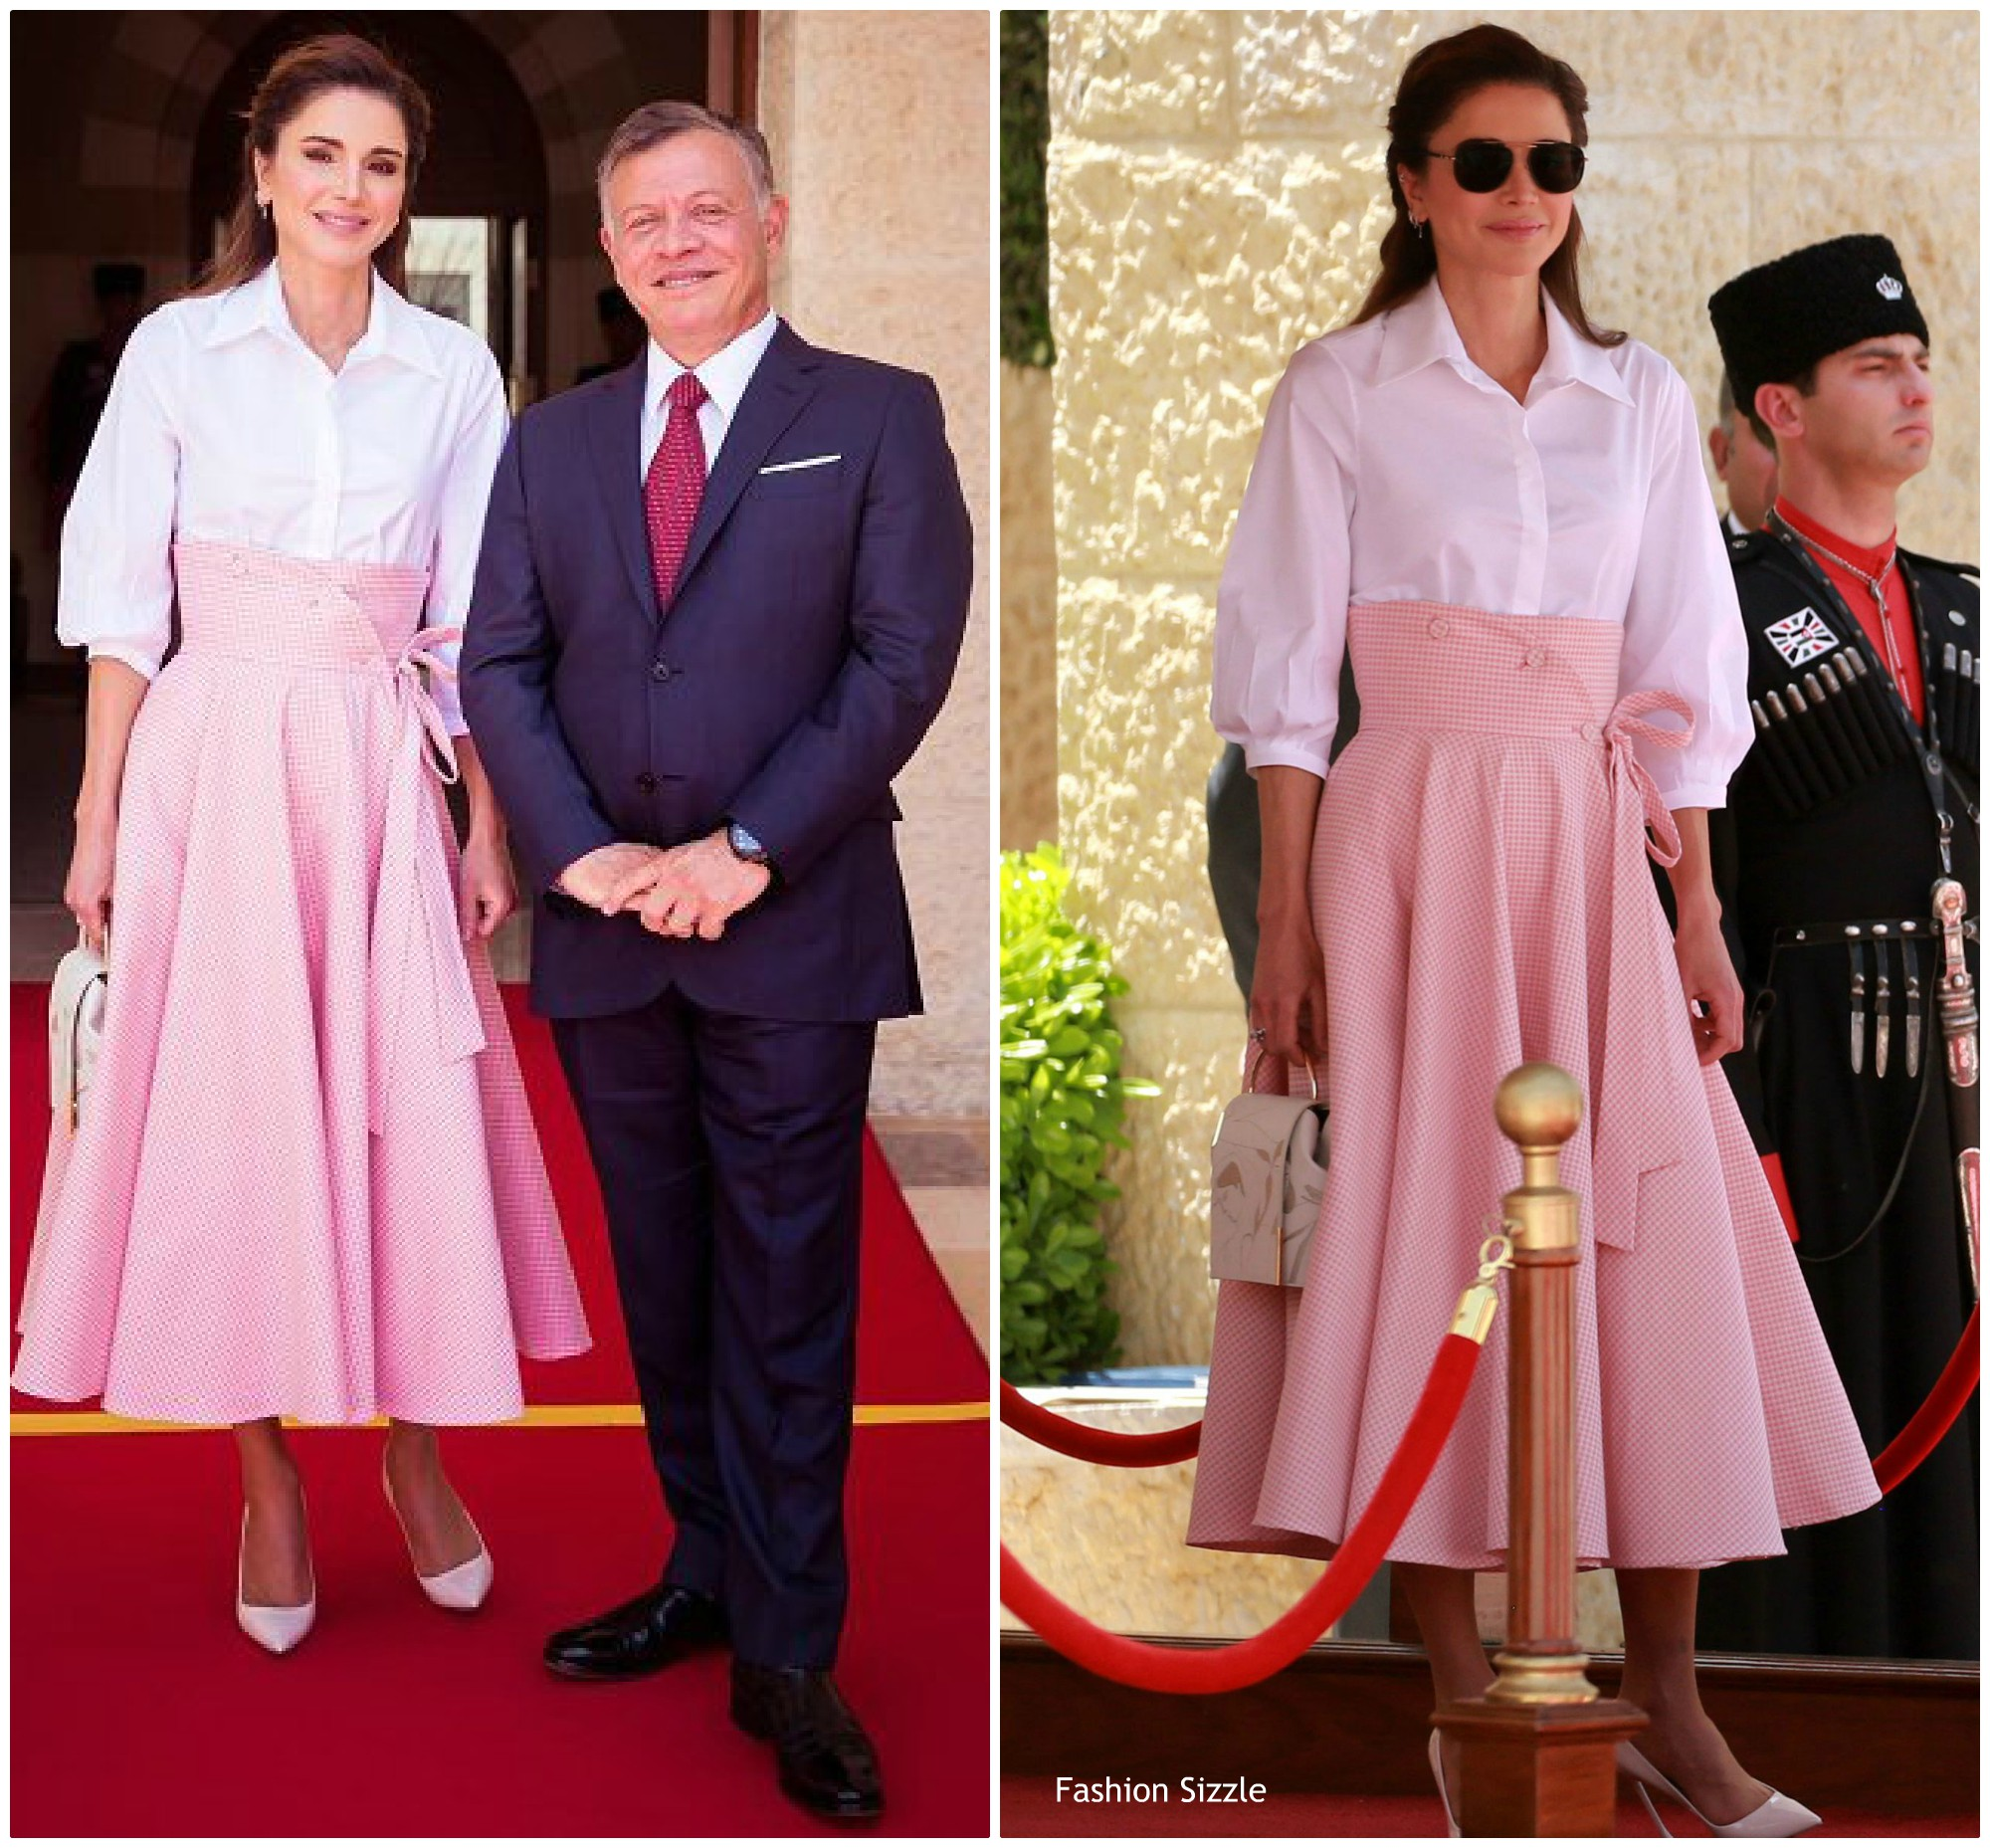 queen-rania-of-jordan-in-sara-battaglia-austrian-president-visit